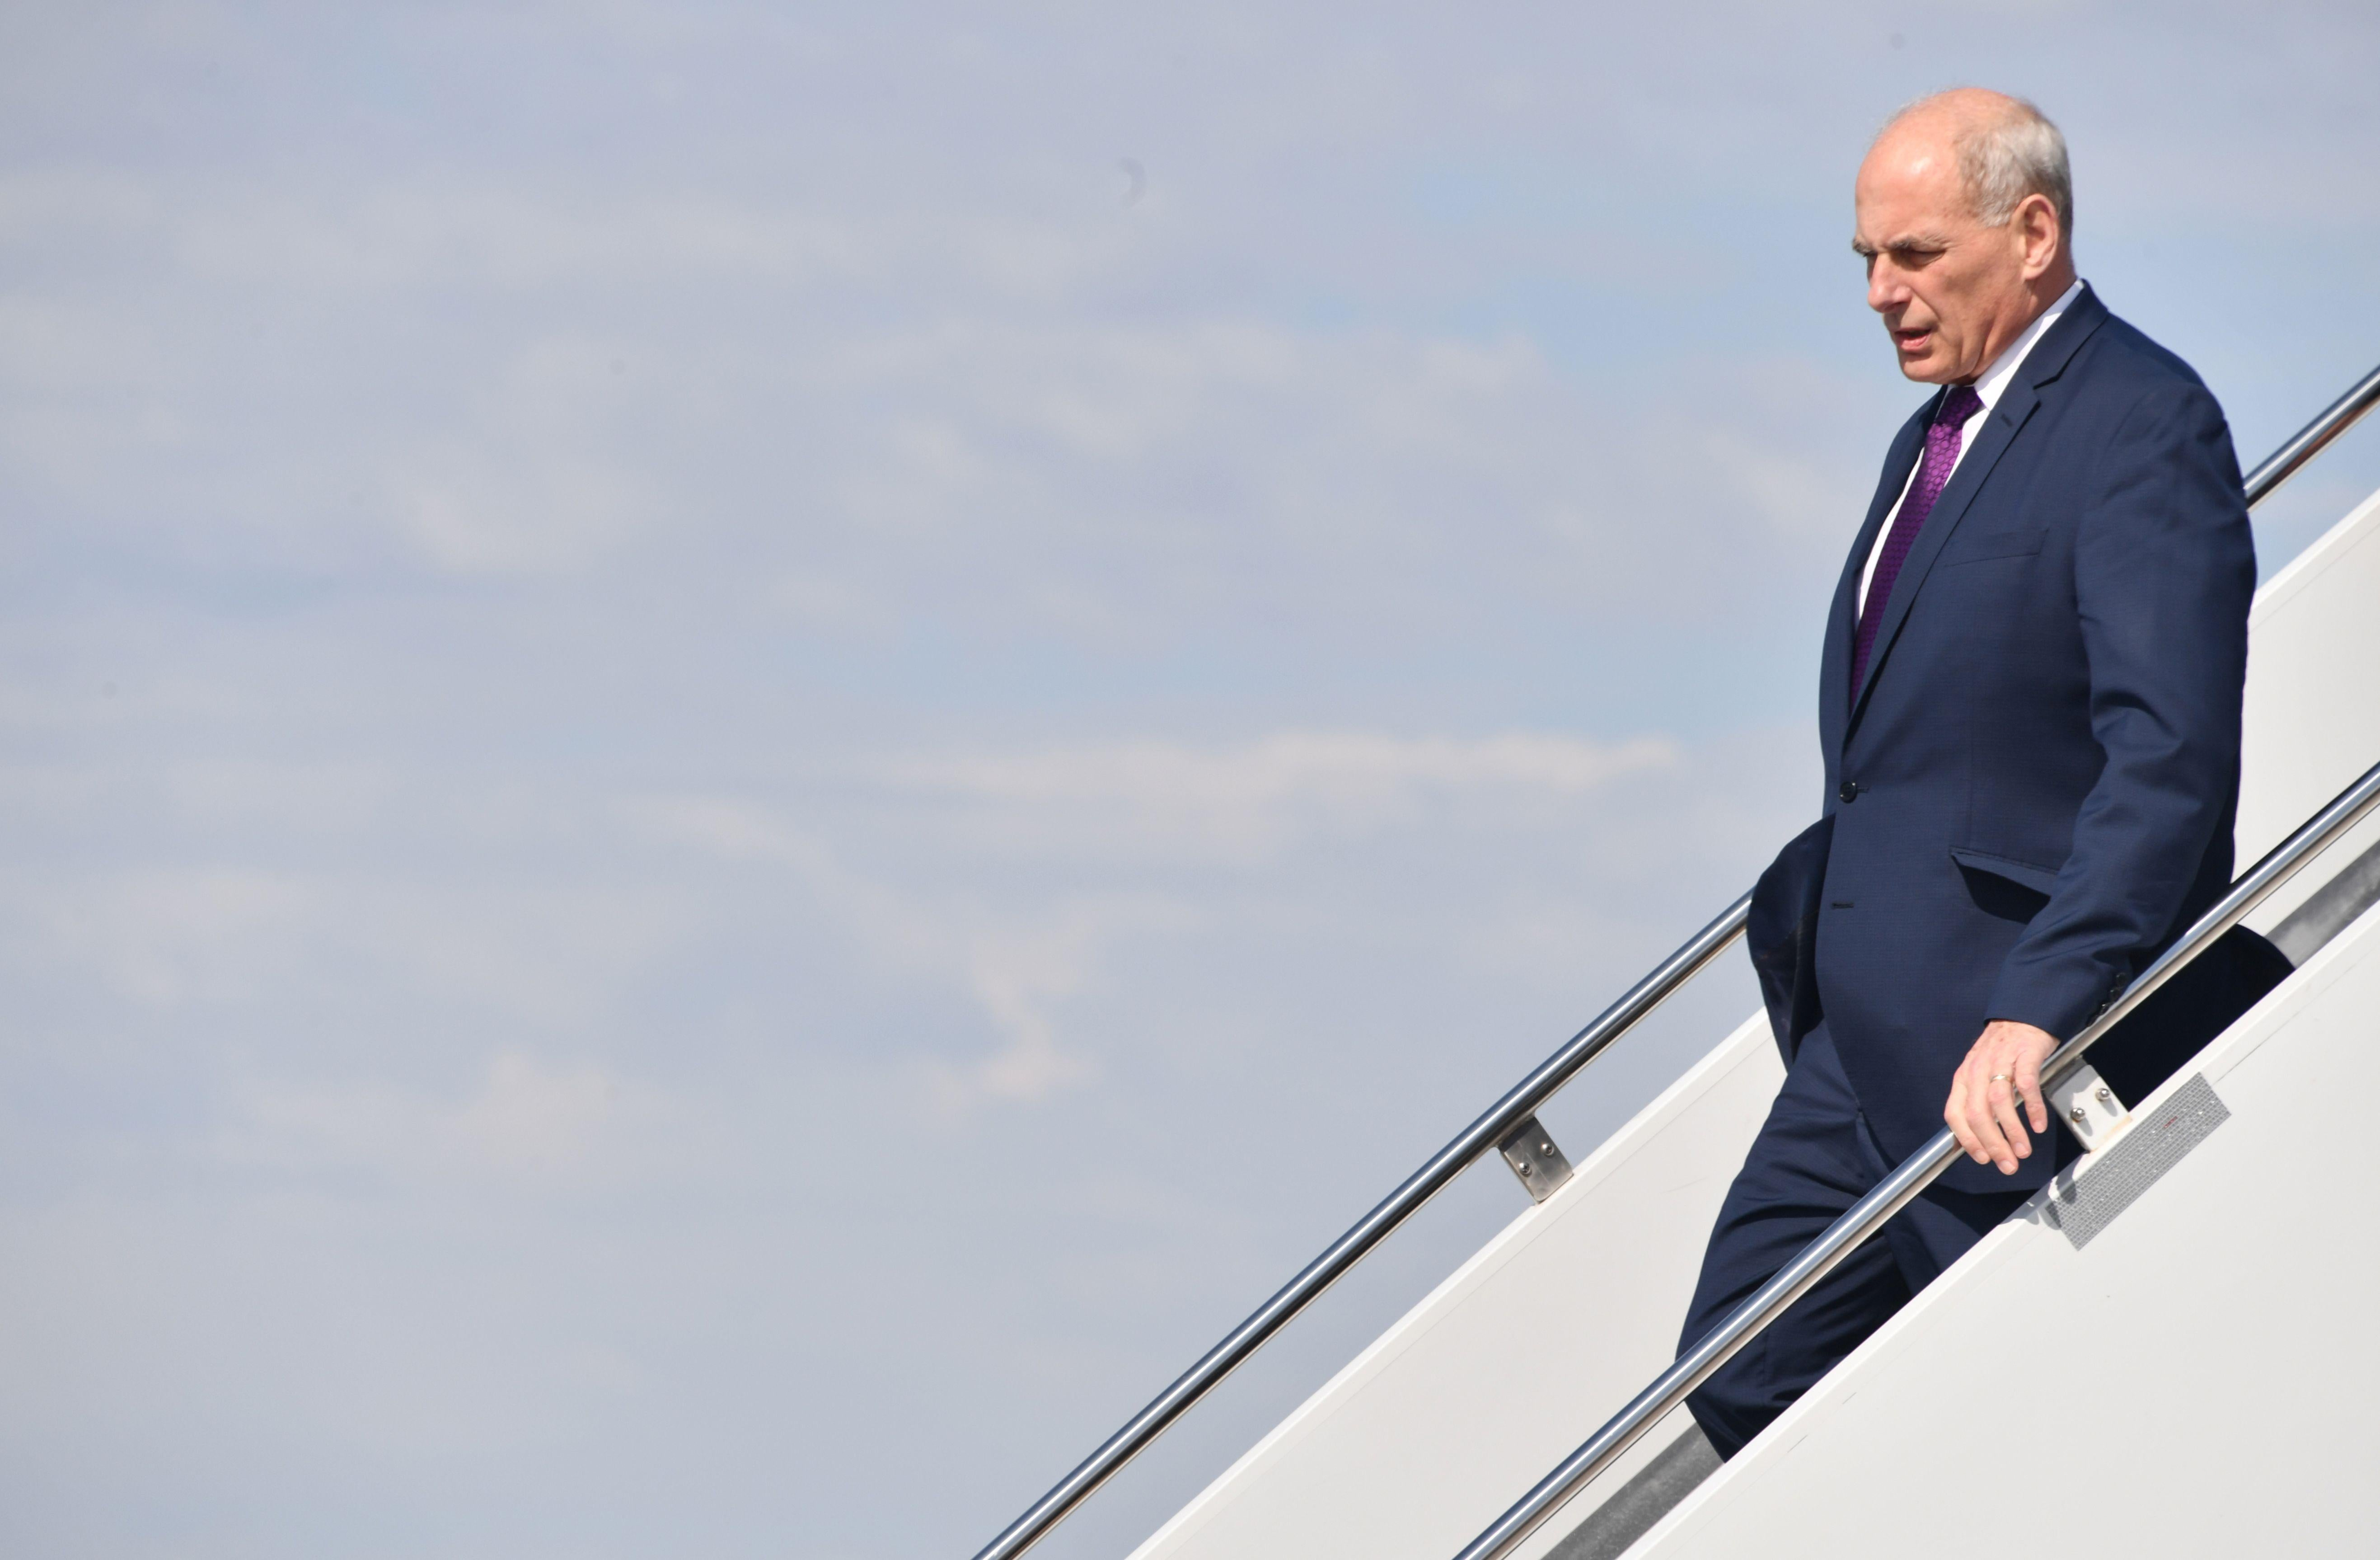 White House chief of staff John Kelly arrives at Hector International Airport in Fargo, North Dakota, on September 7, 2018. (Photo by Nicholas Kamm / AFP)        (Photo credit should read NICHOLAS KAMM/AFP/Getty Images)